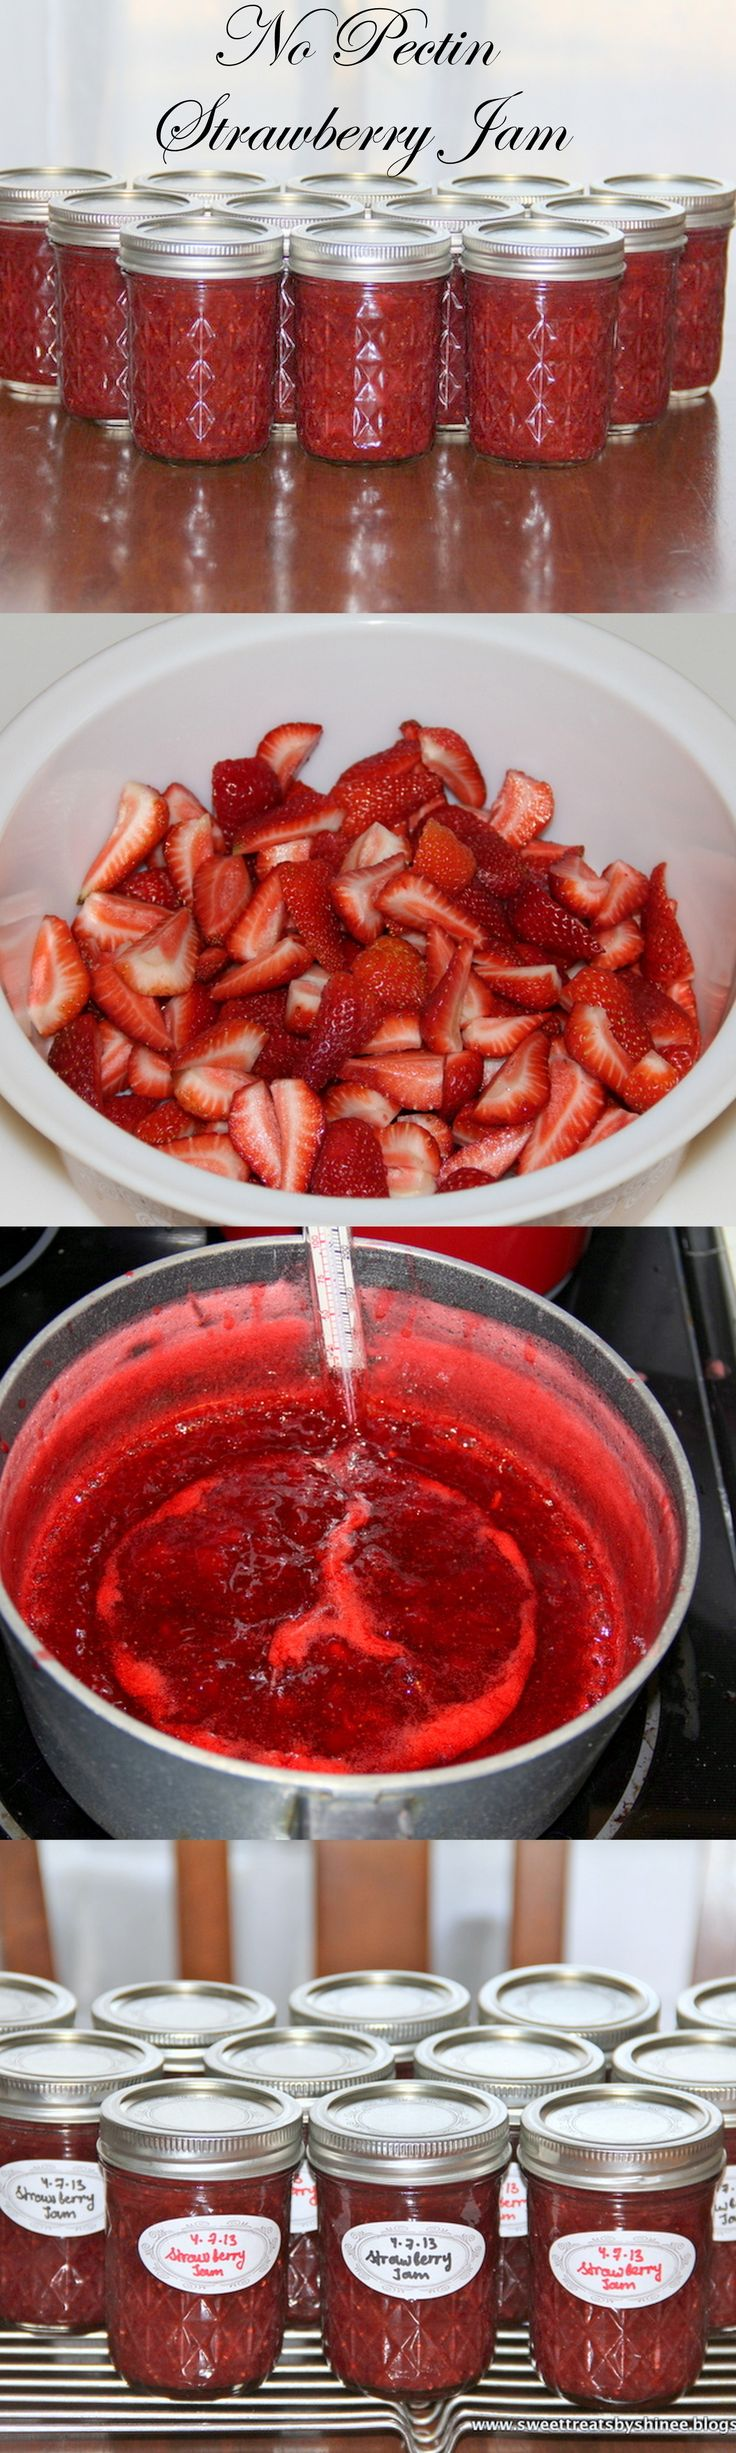 Easy Strawberry Jam (No Pectin)